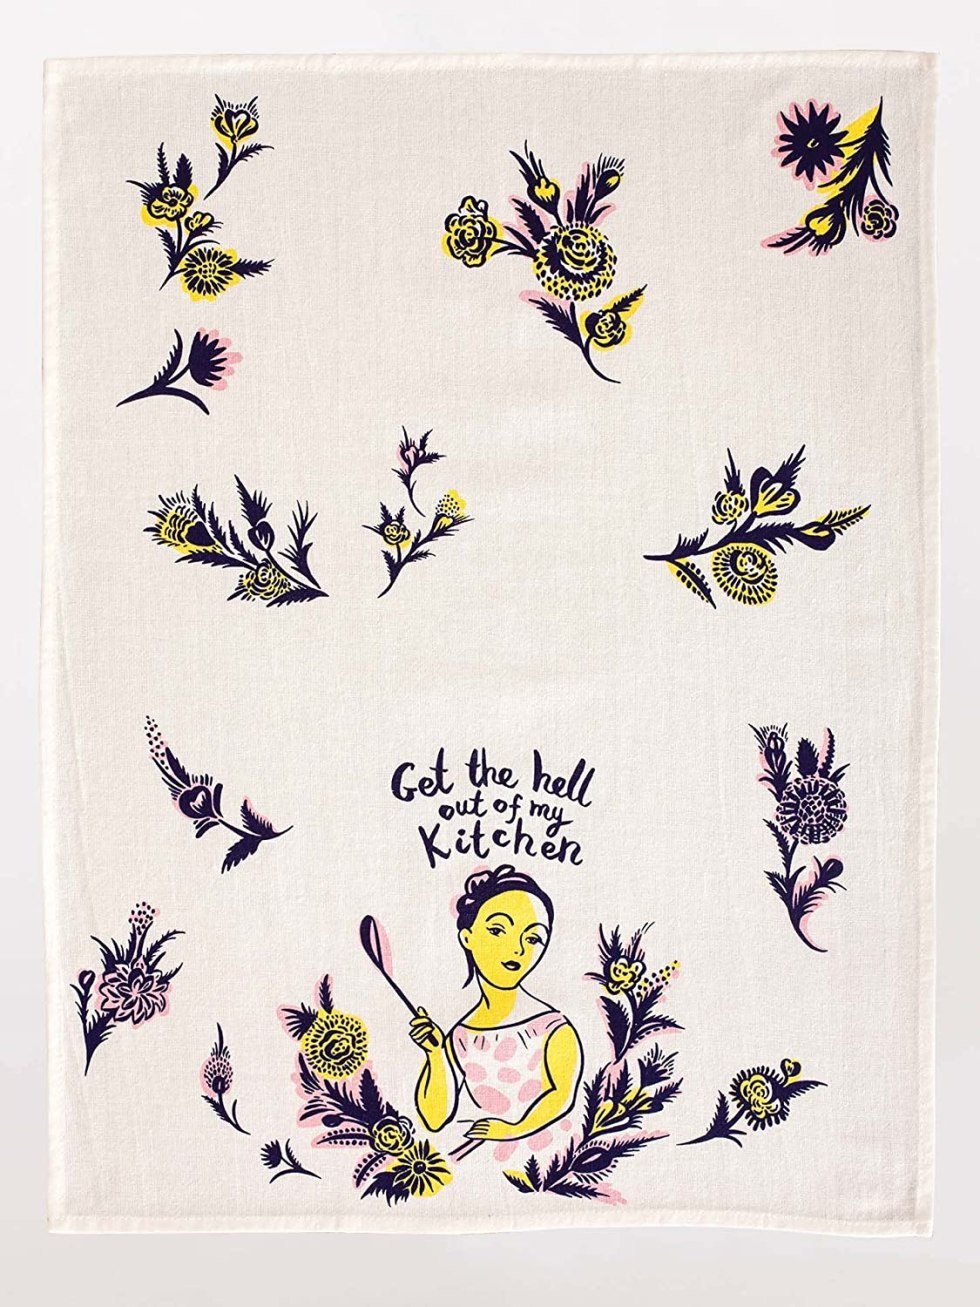 Out of my kitchen funny dish towel for gifts